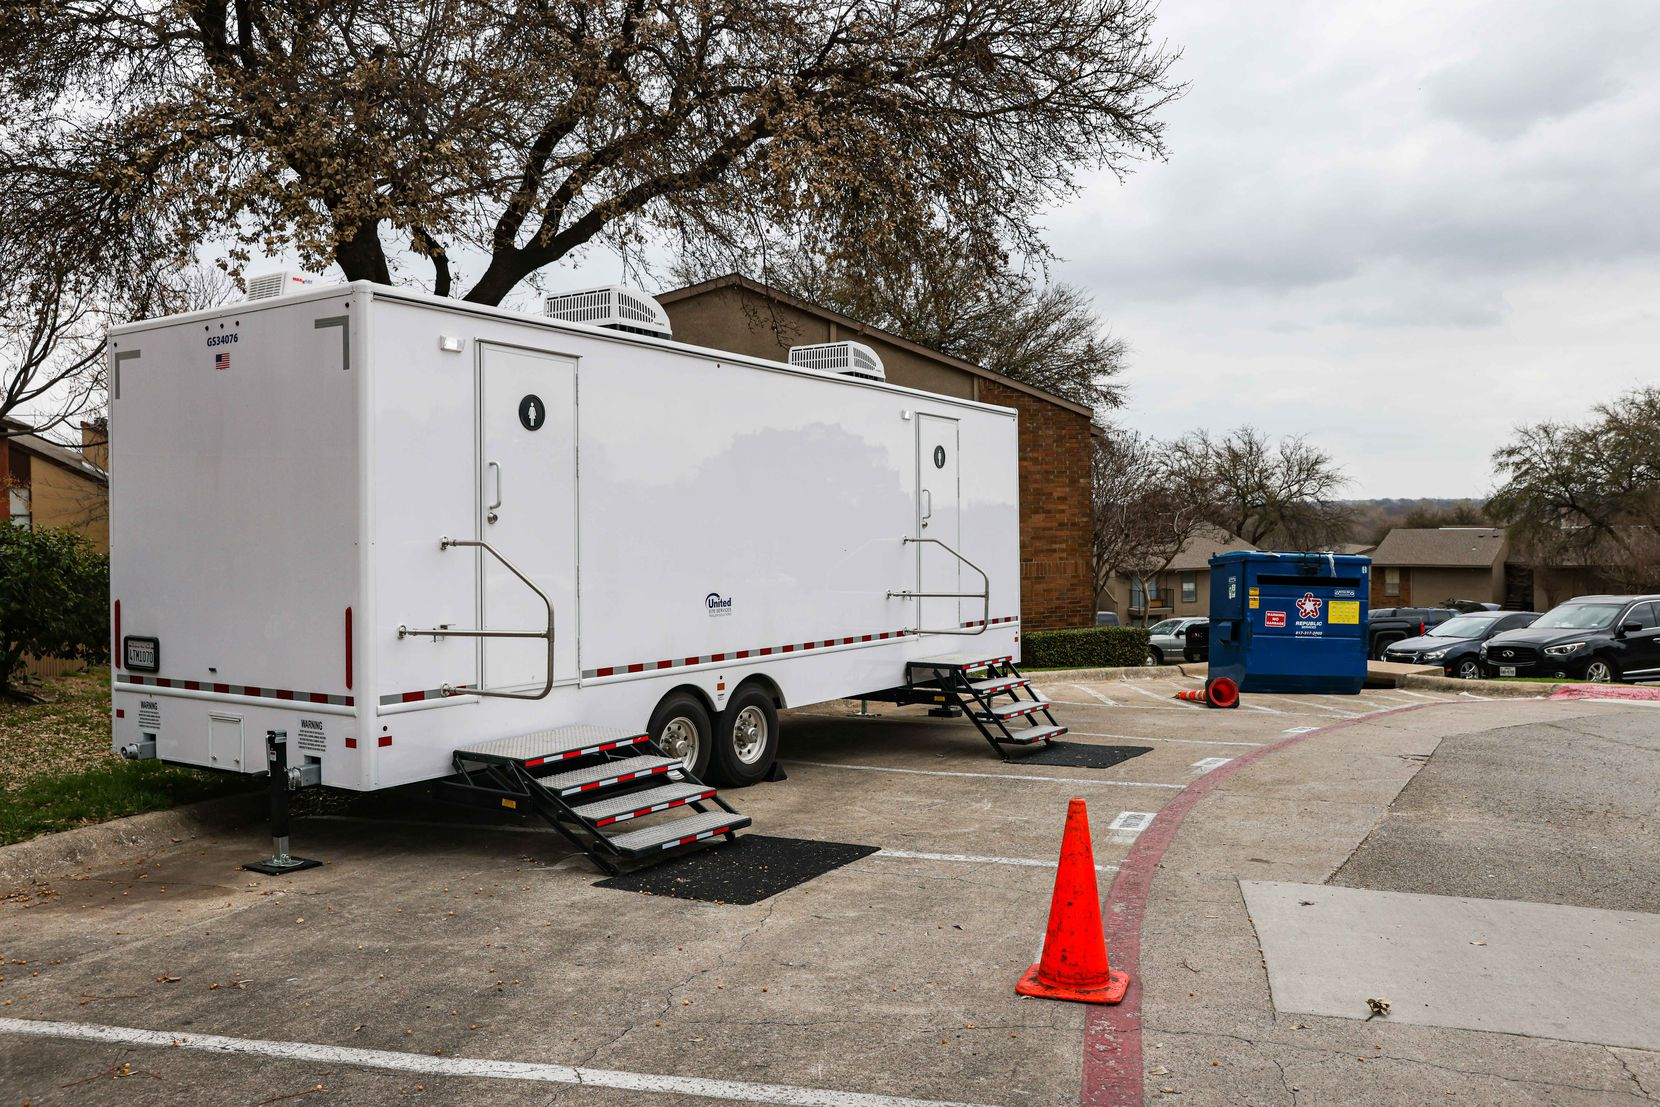 Wildflower Apts complex enabled a couple of portable showers to be used by residents in Dallas on Thursday, March 11, 2021, after many were left without electricity, water after the winter storm hit Texas in mid-February.